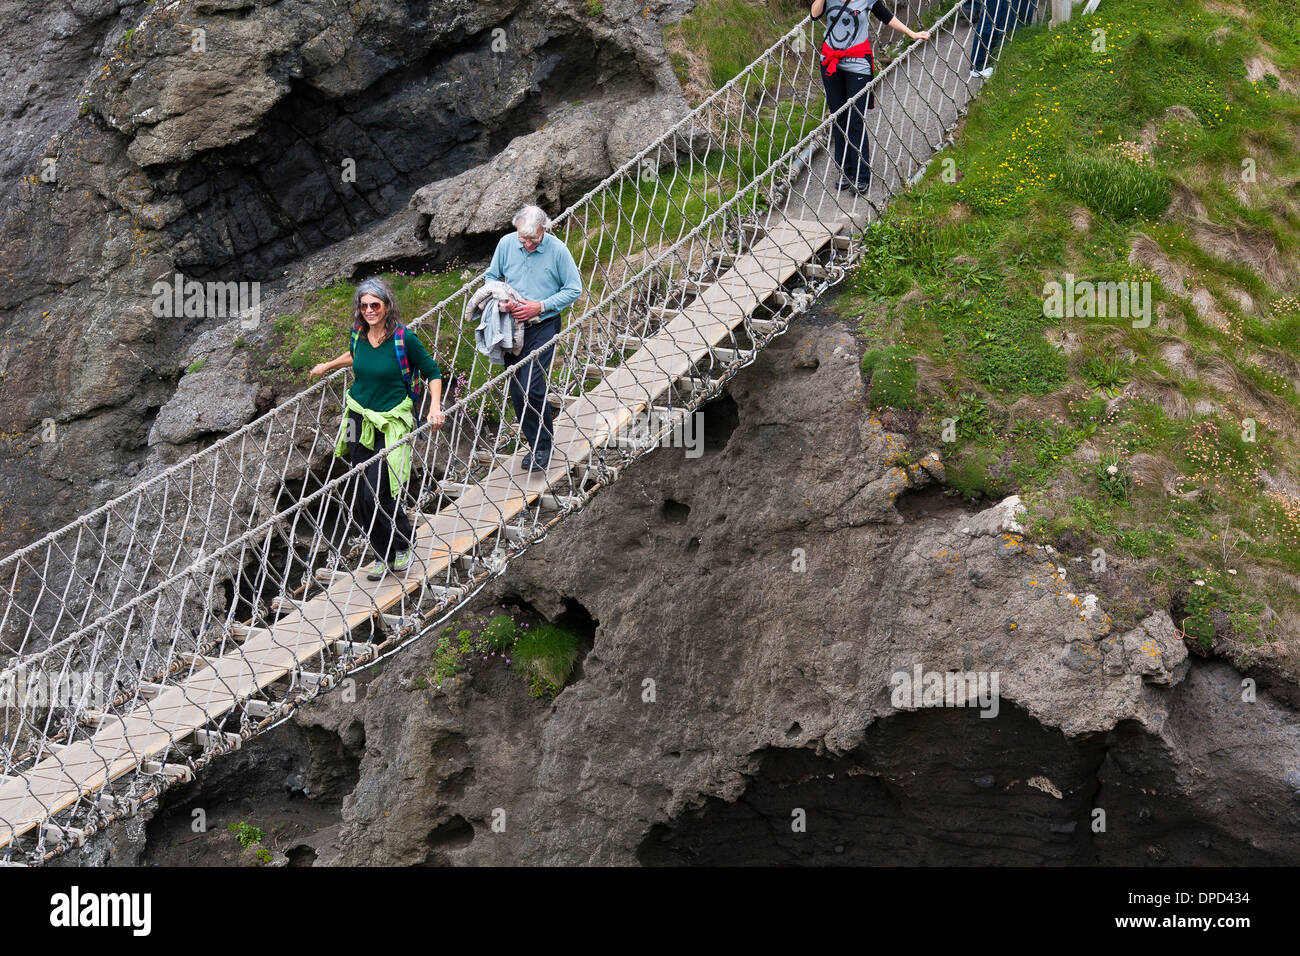 A couple walks carefully halfway across the Carrick-a-Rede rope bridge on the Antrim coast of Northern Ireland. - Stock Image